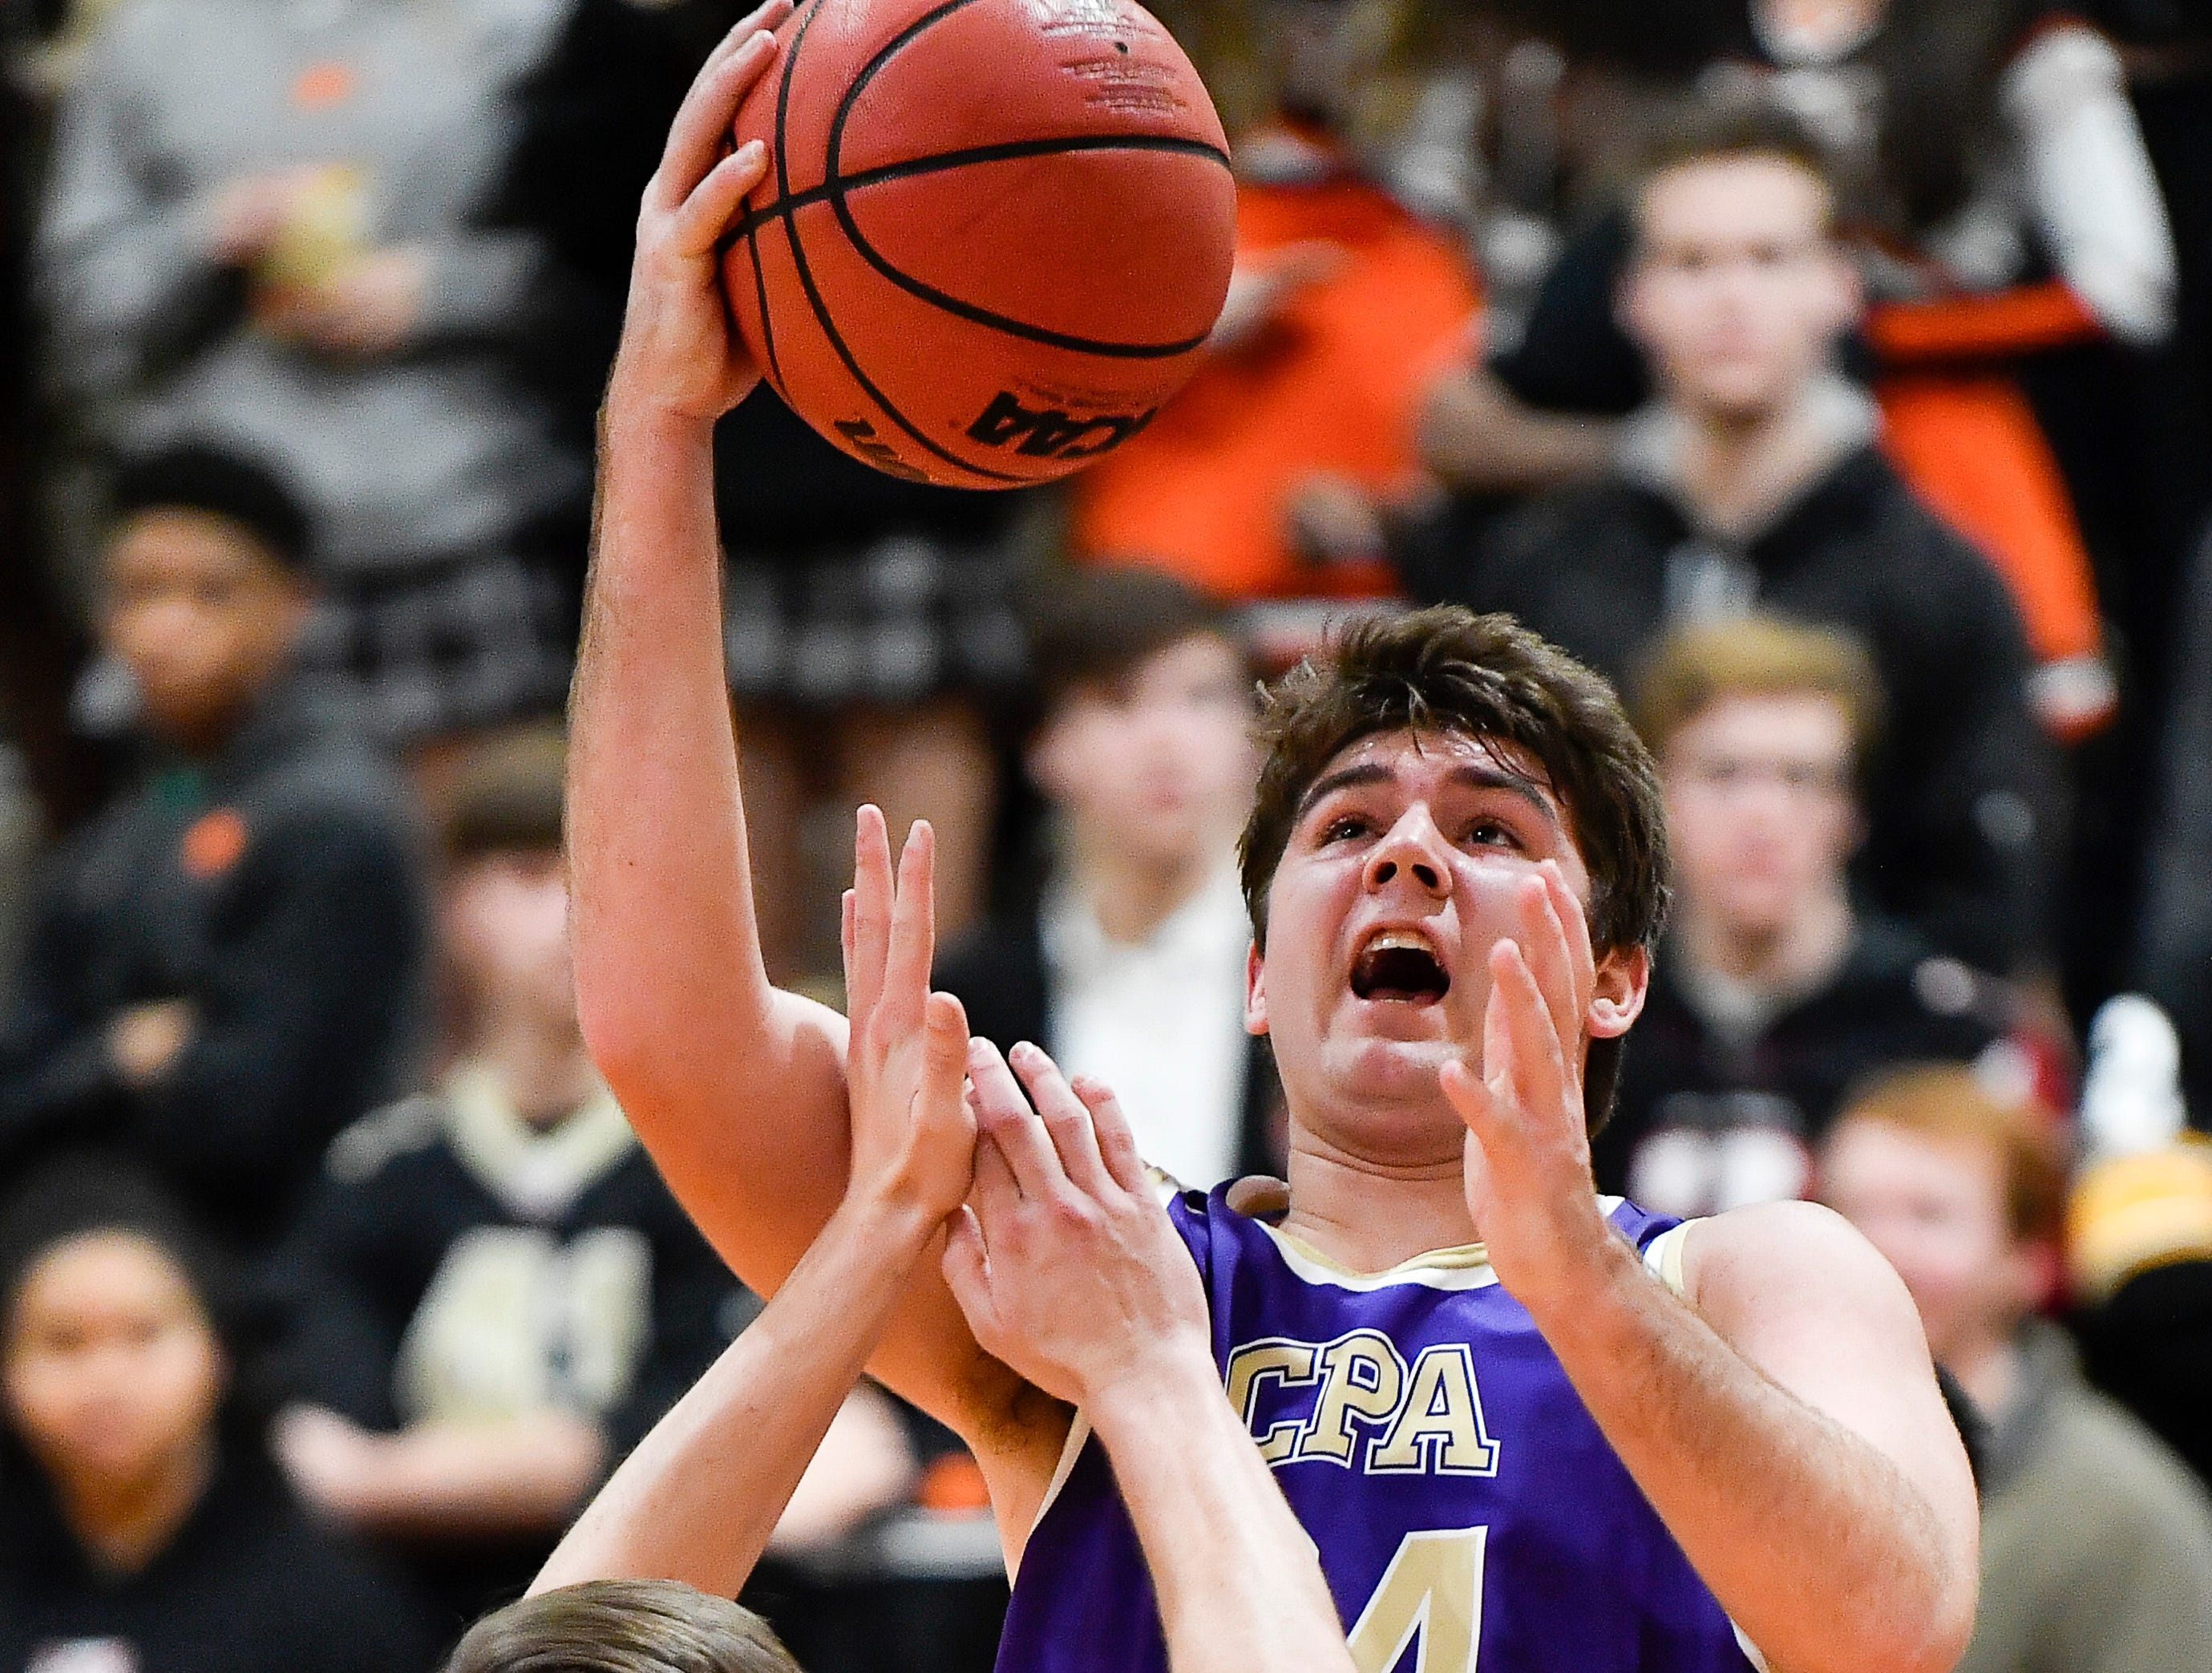 CPA's Mike McCormick shoots over Ensworth guard Ed Eubanks (12) during their game at Ensworth High School Tuesday, Dec. 11, 2018, in Nashville, Tenn.